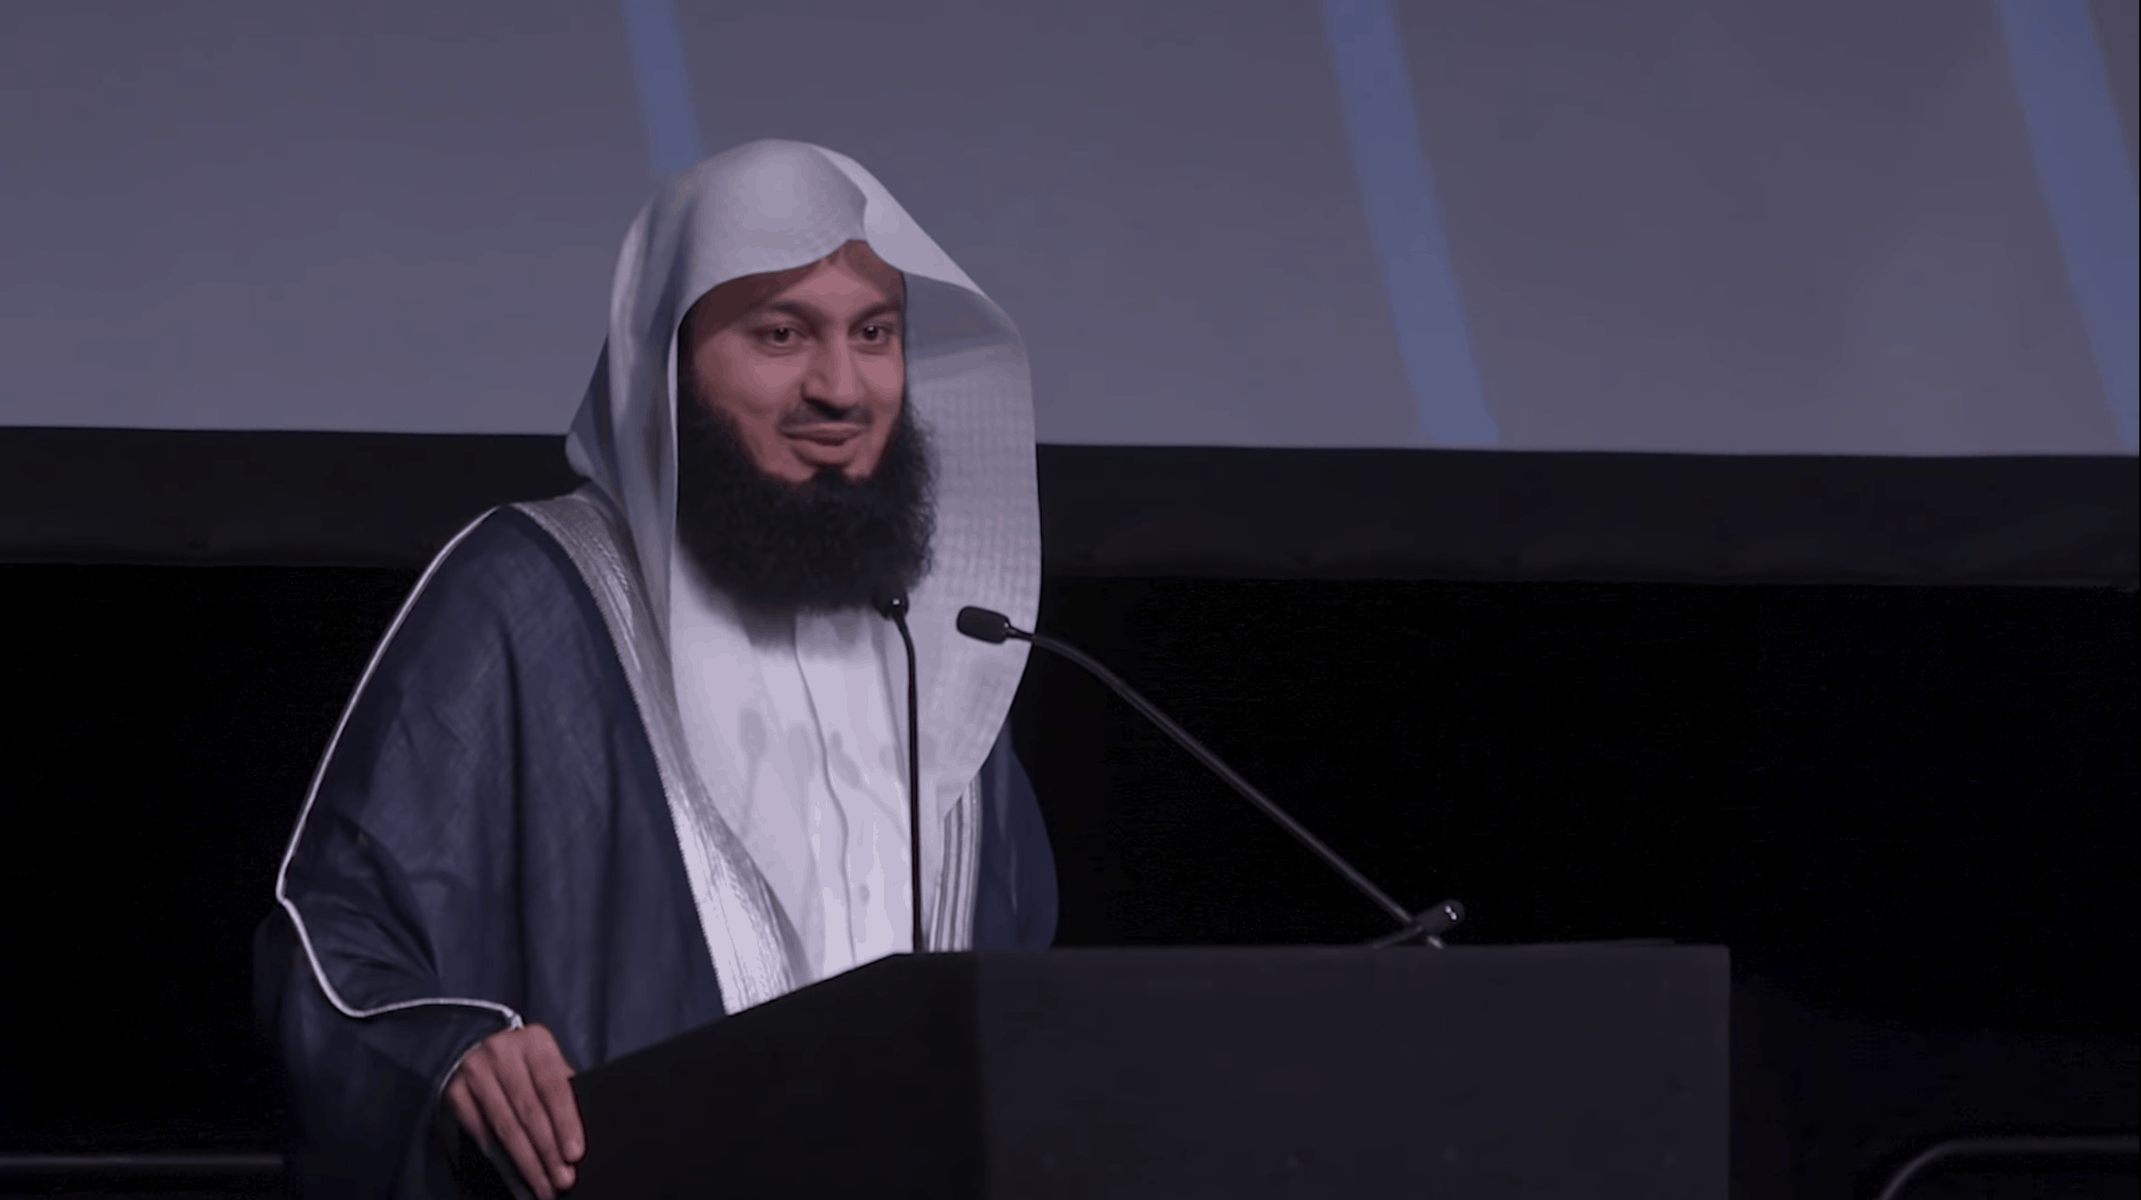 Ismail ibn Musa Menk – Mercy, Respect & Service